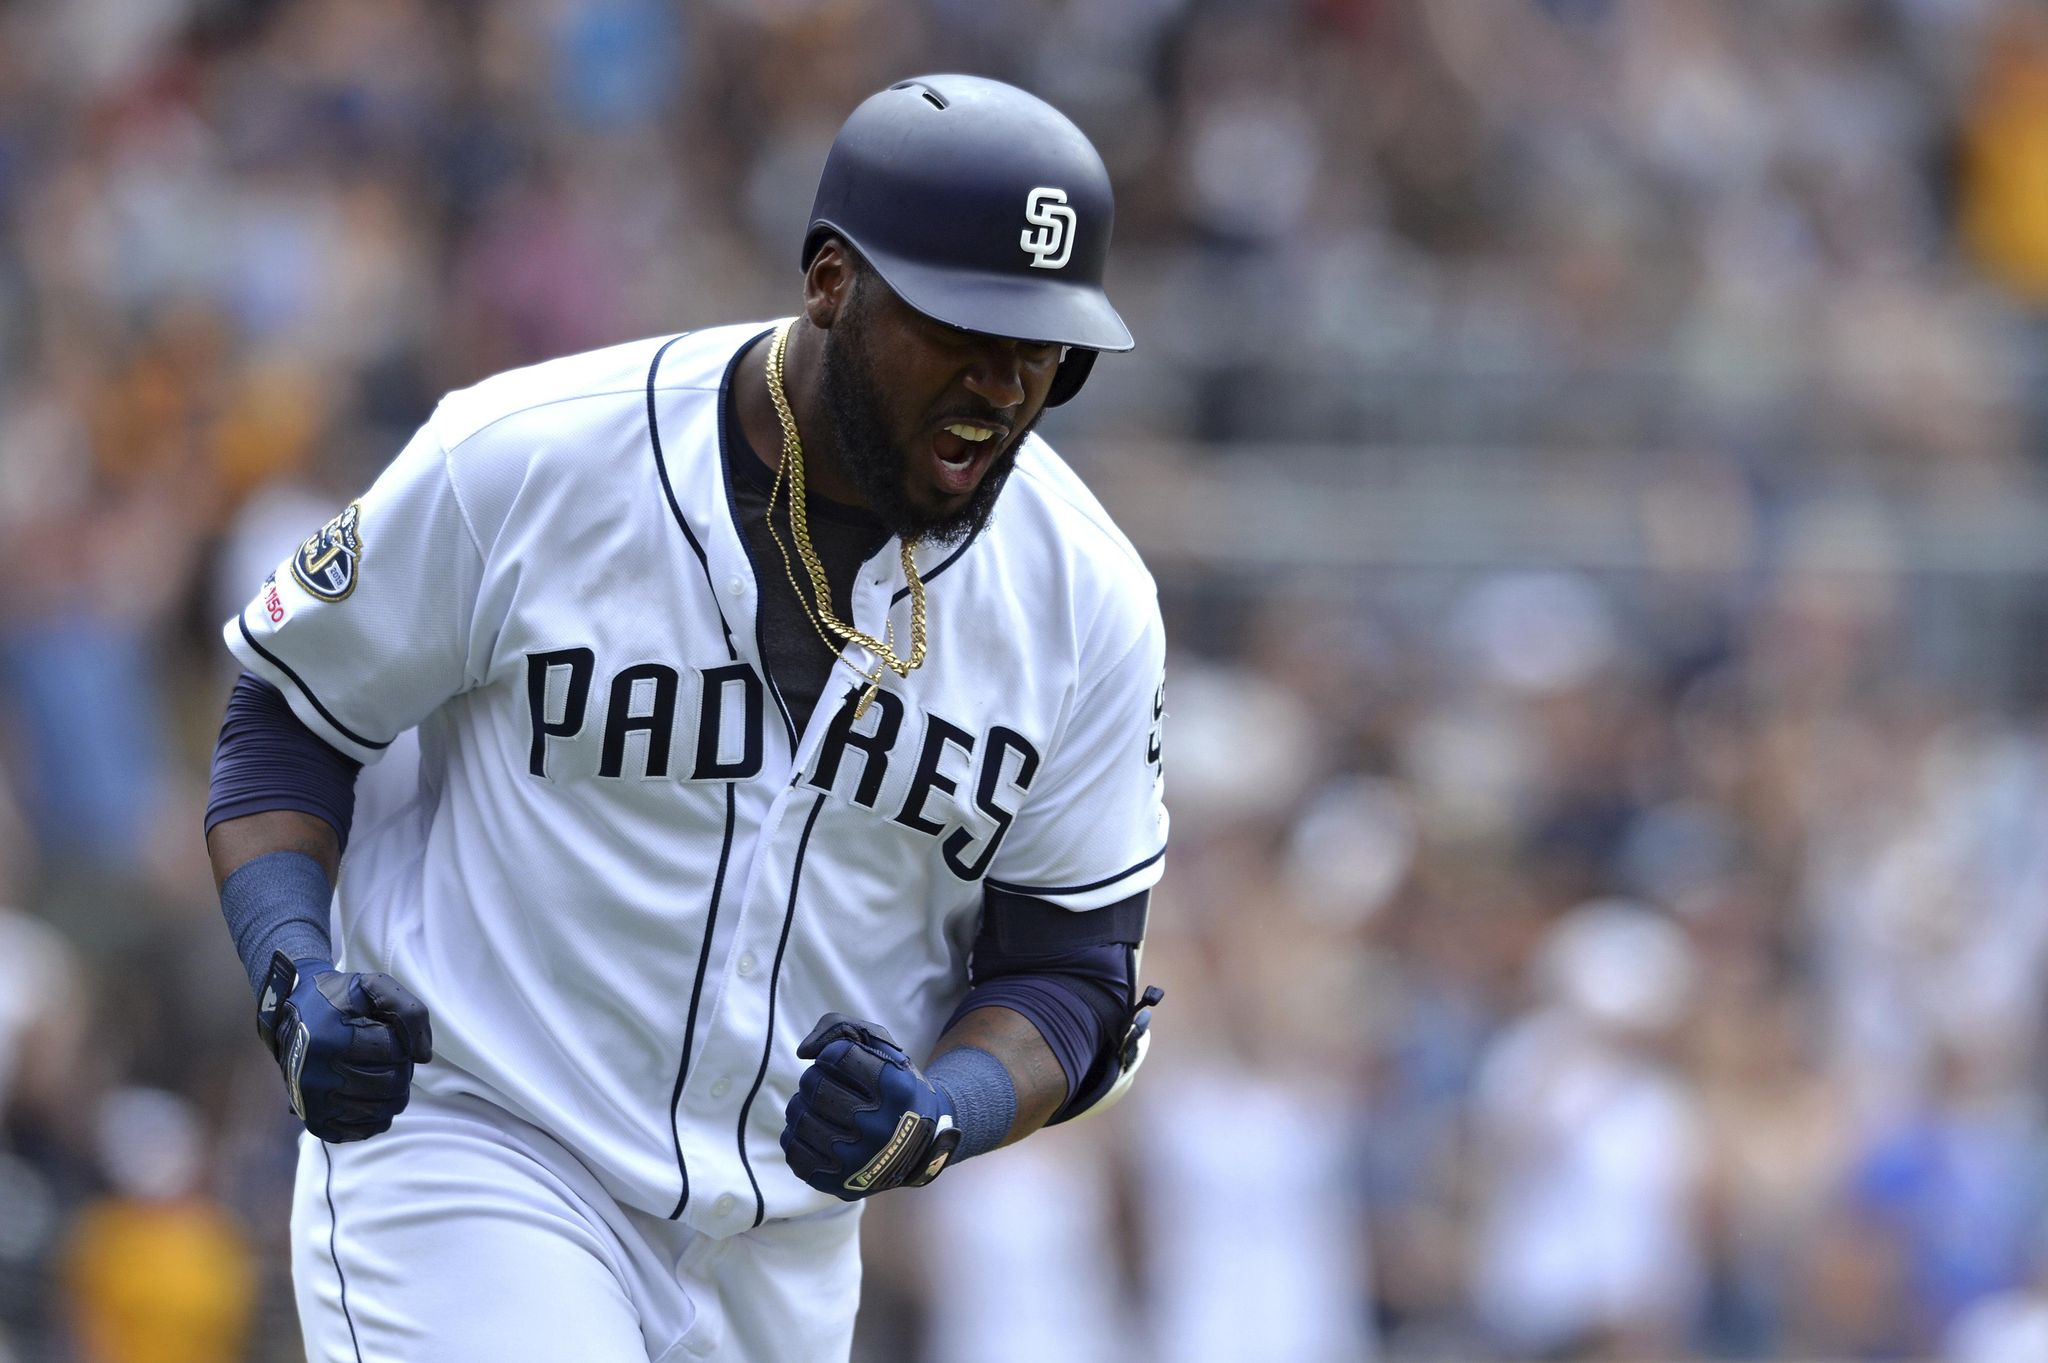 Brewers_padres_baseball_04964_s2048x1363